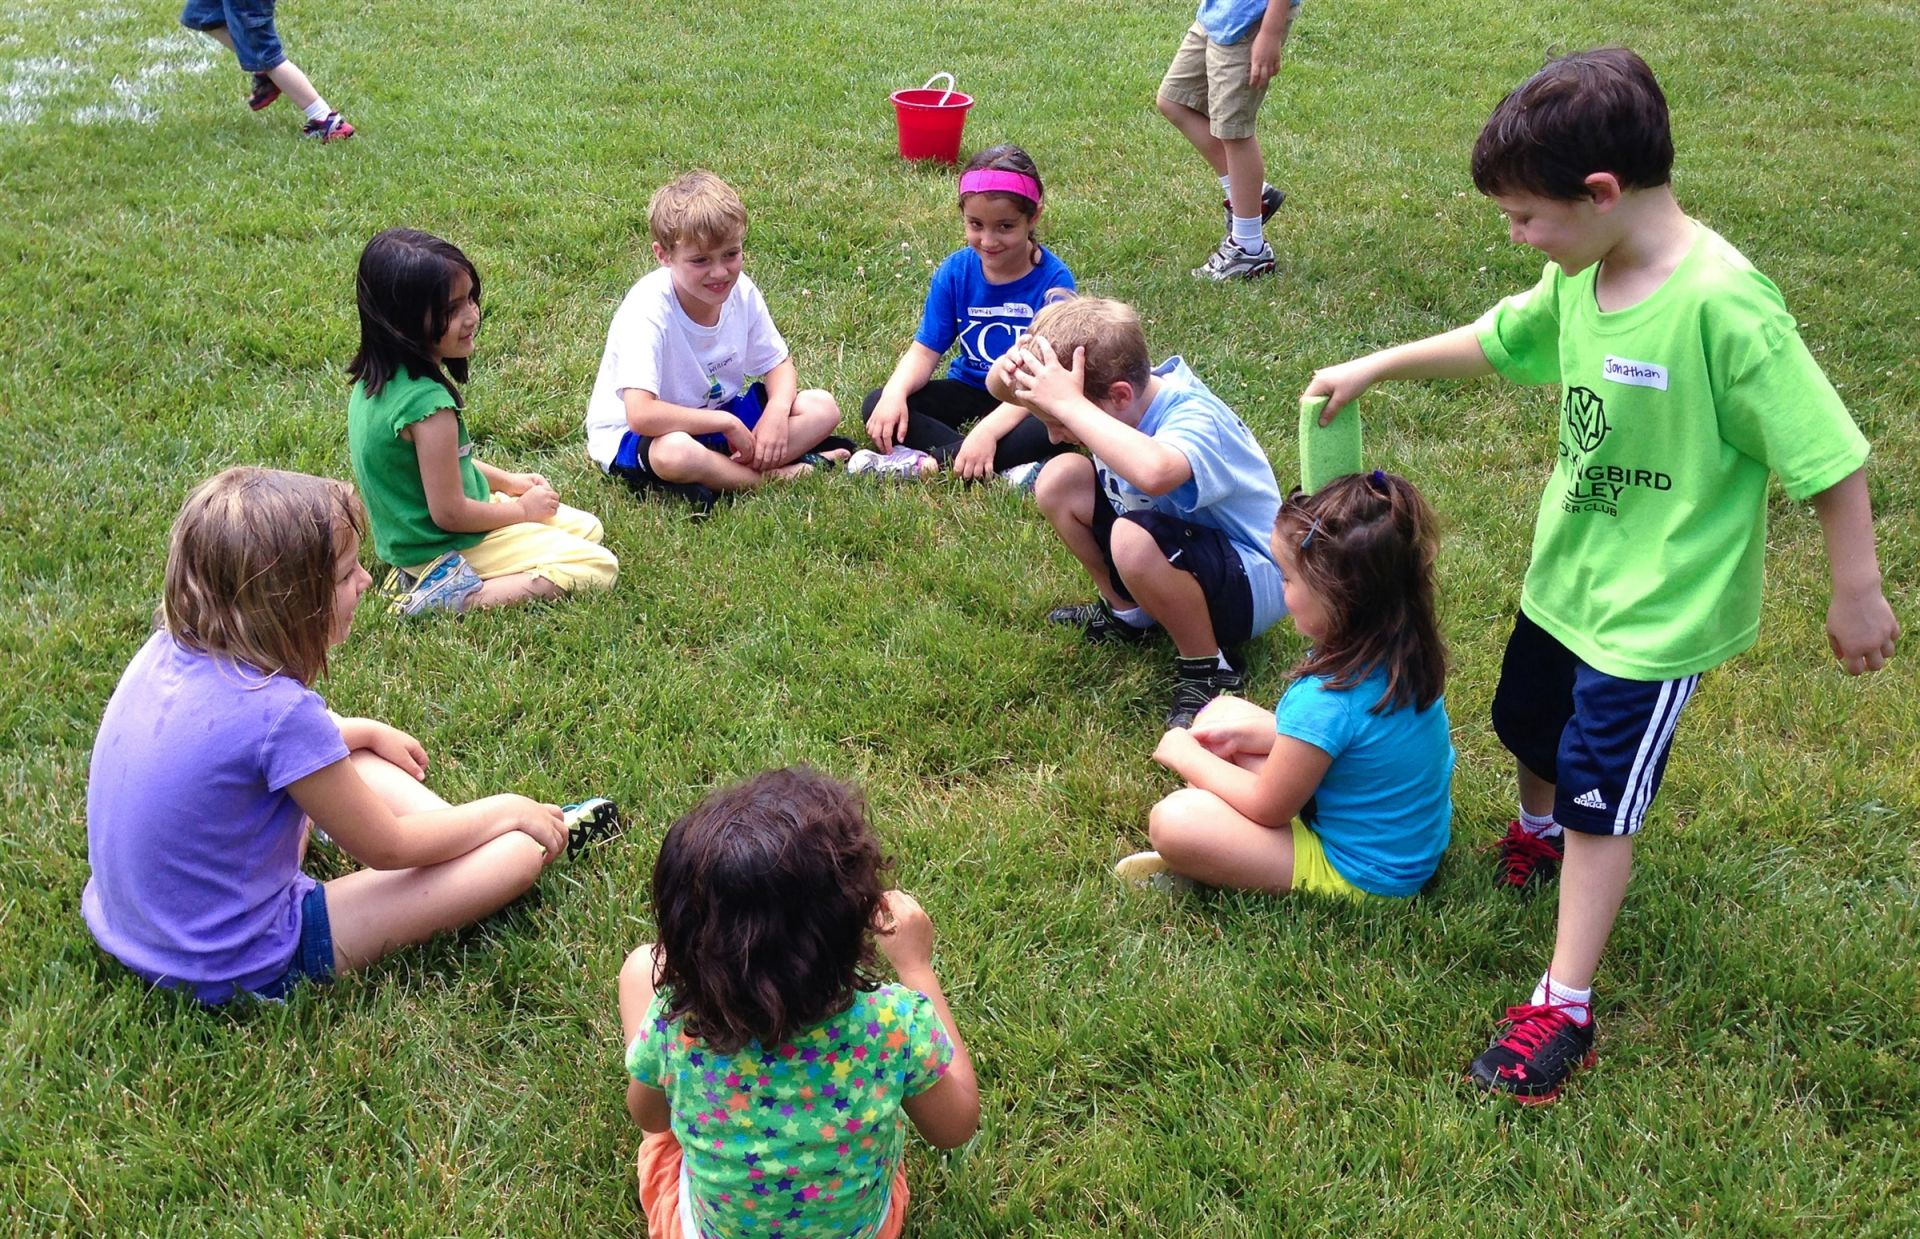 KCD offers a wide range of summer camps and activities.